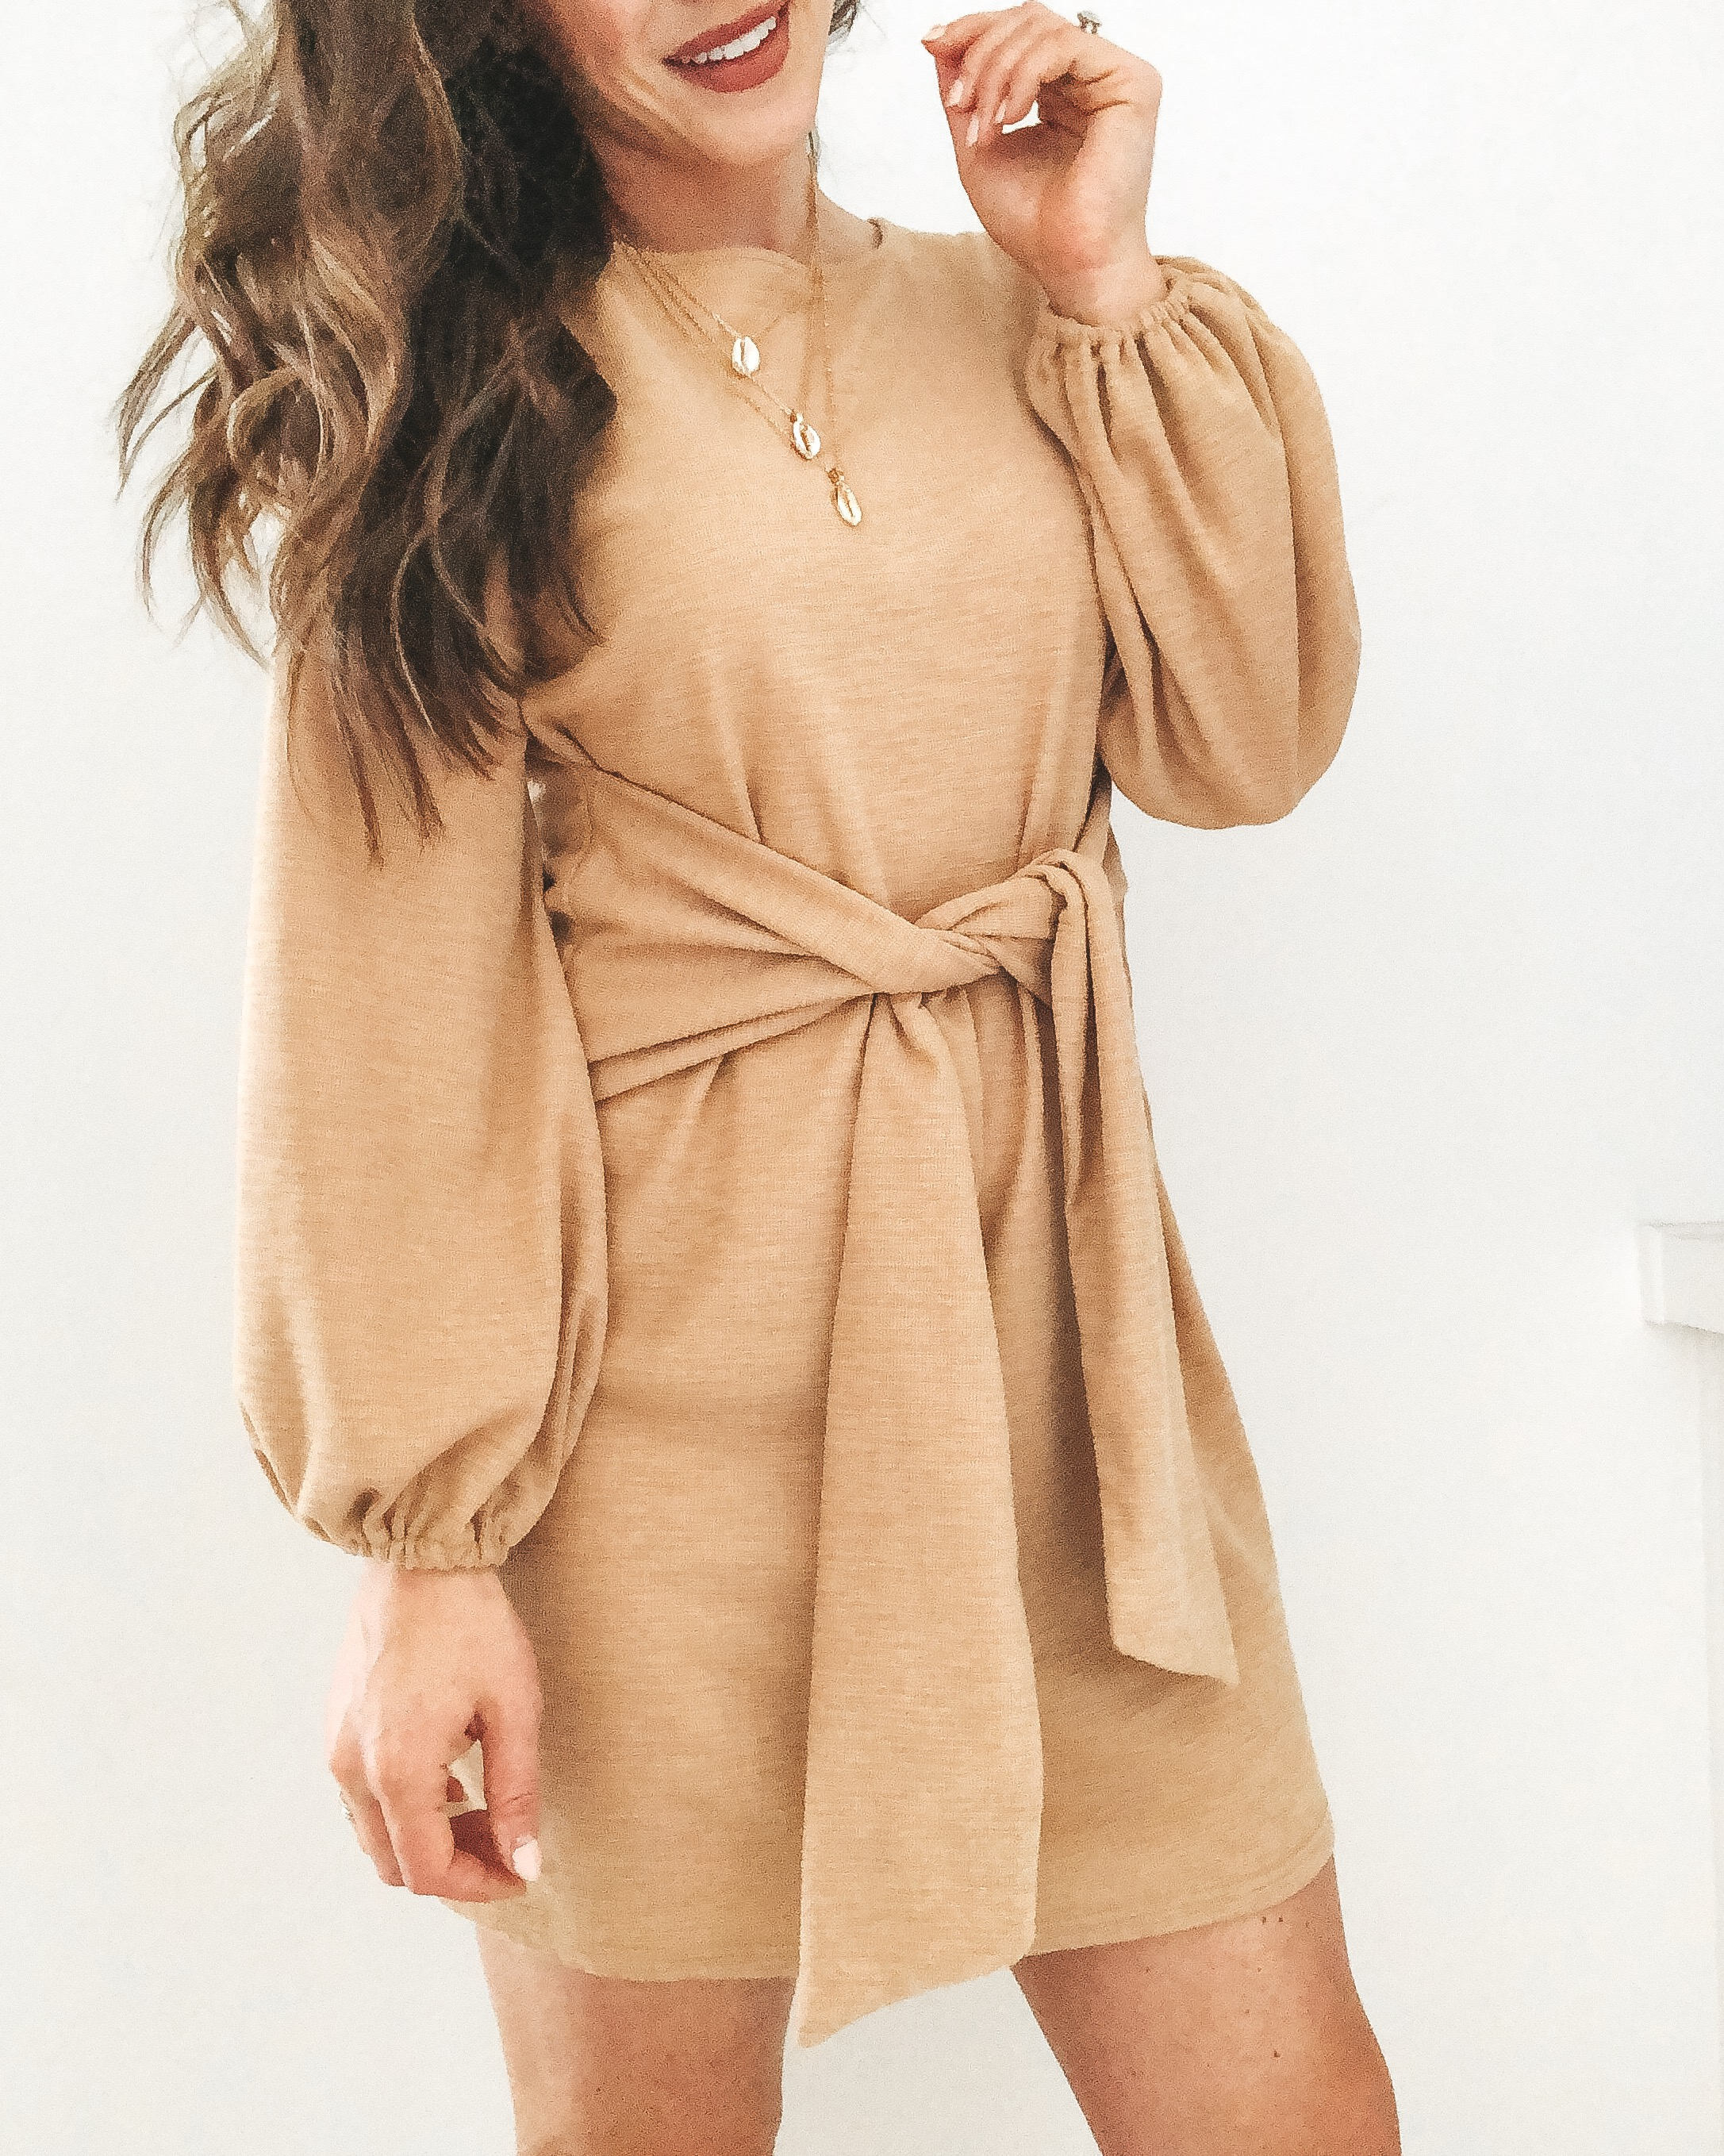 Amazon fashion finds for summer.  10 under $35 amazon women's clothing pieces.  Cute tie waist dress.  Khaki dress with flattering waist.